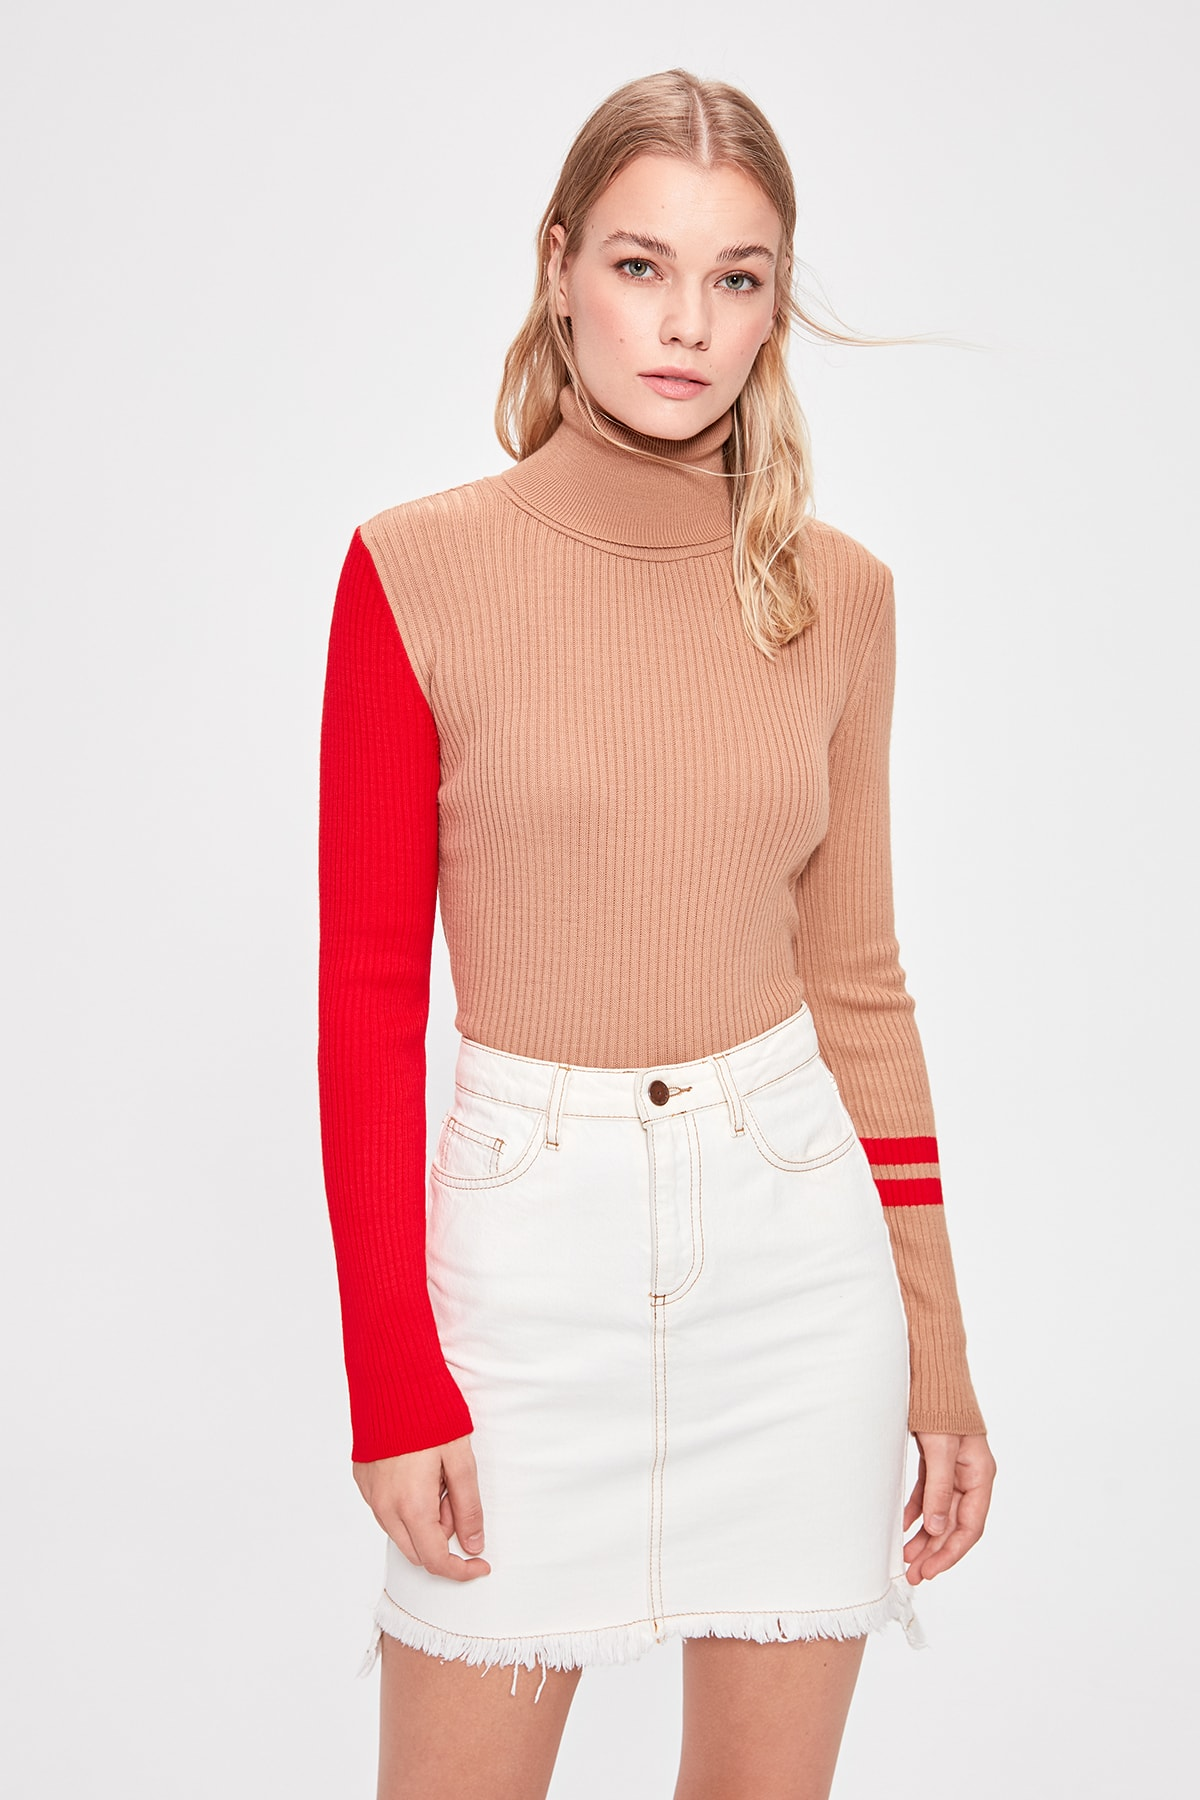 Trendyol Camel Handle With Color Block Sweater Pullover TWOAW20KZ0169